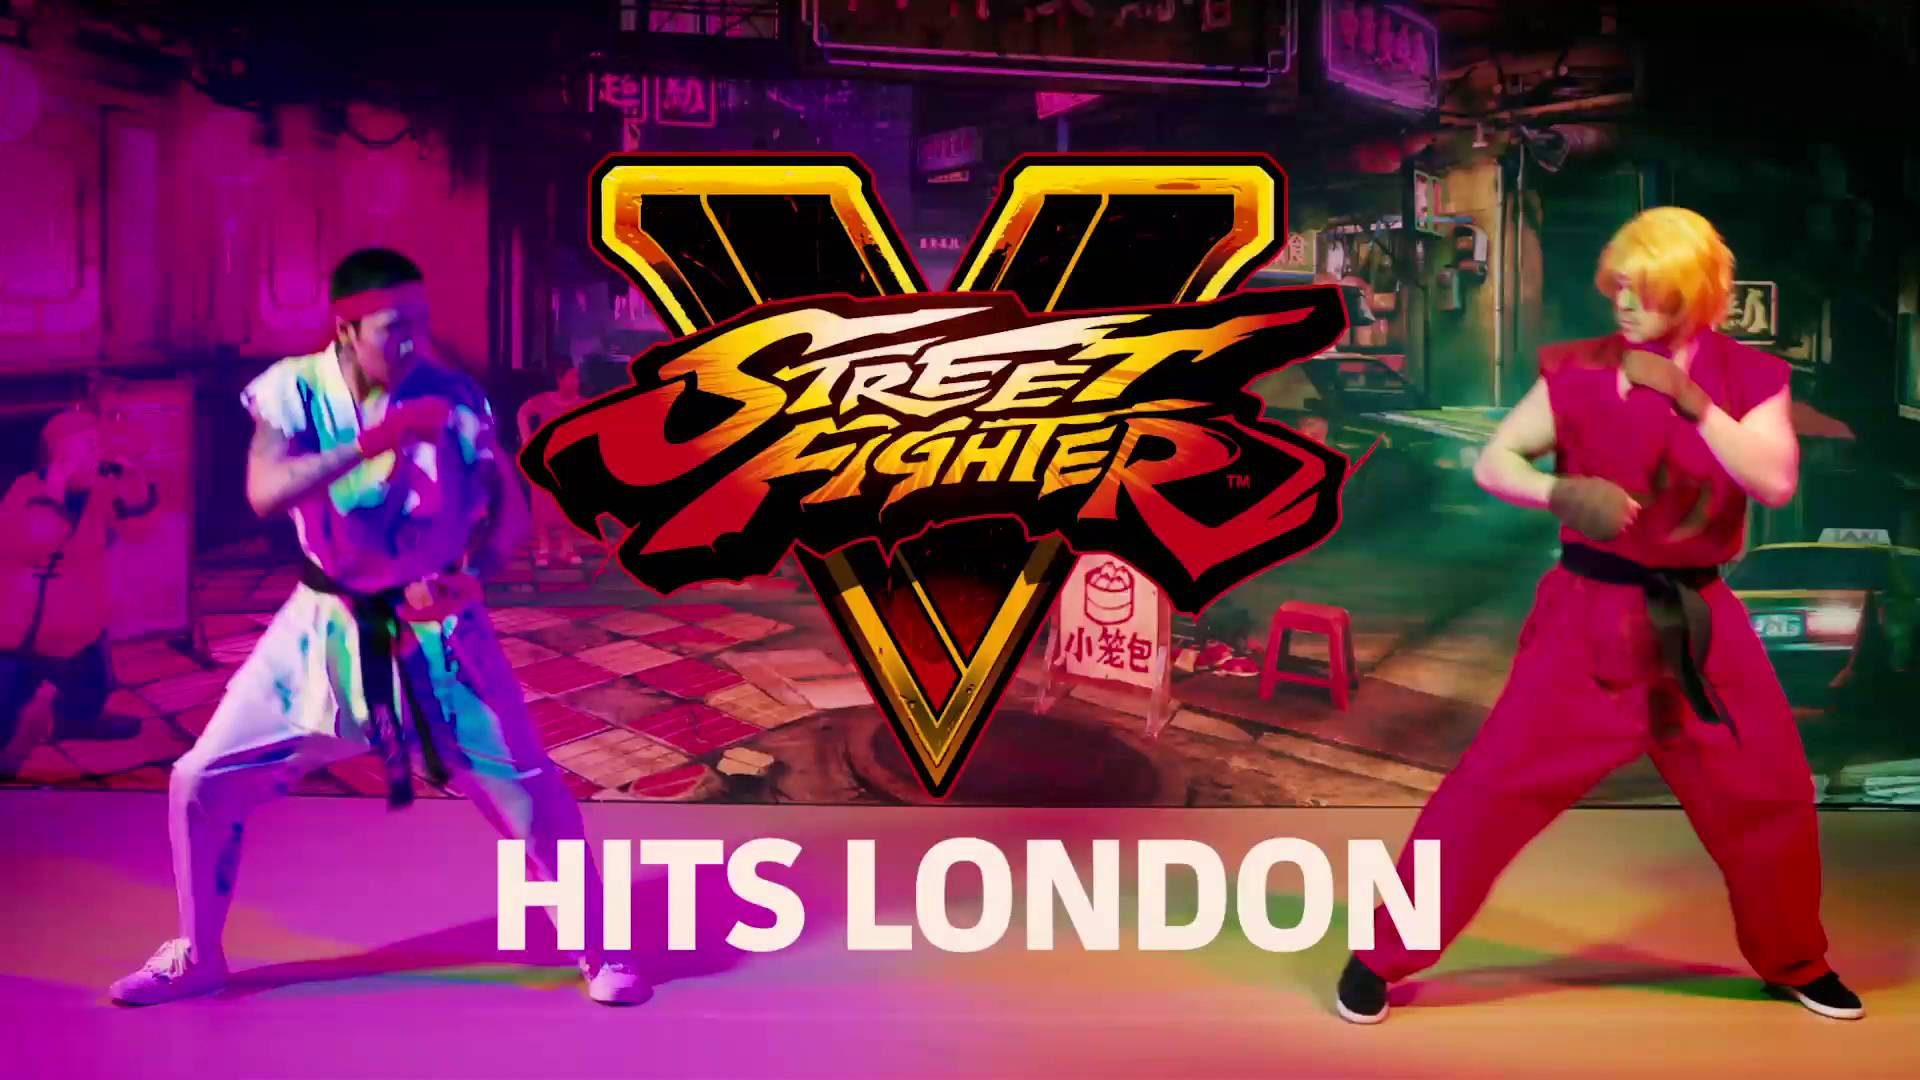 Street Fighter V Hits London - Live Action Performance